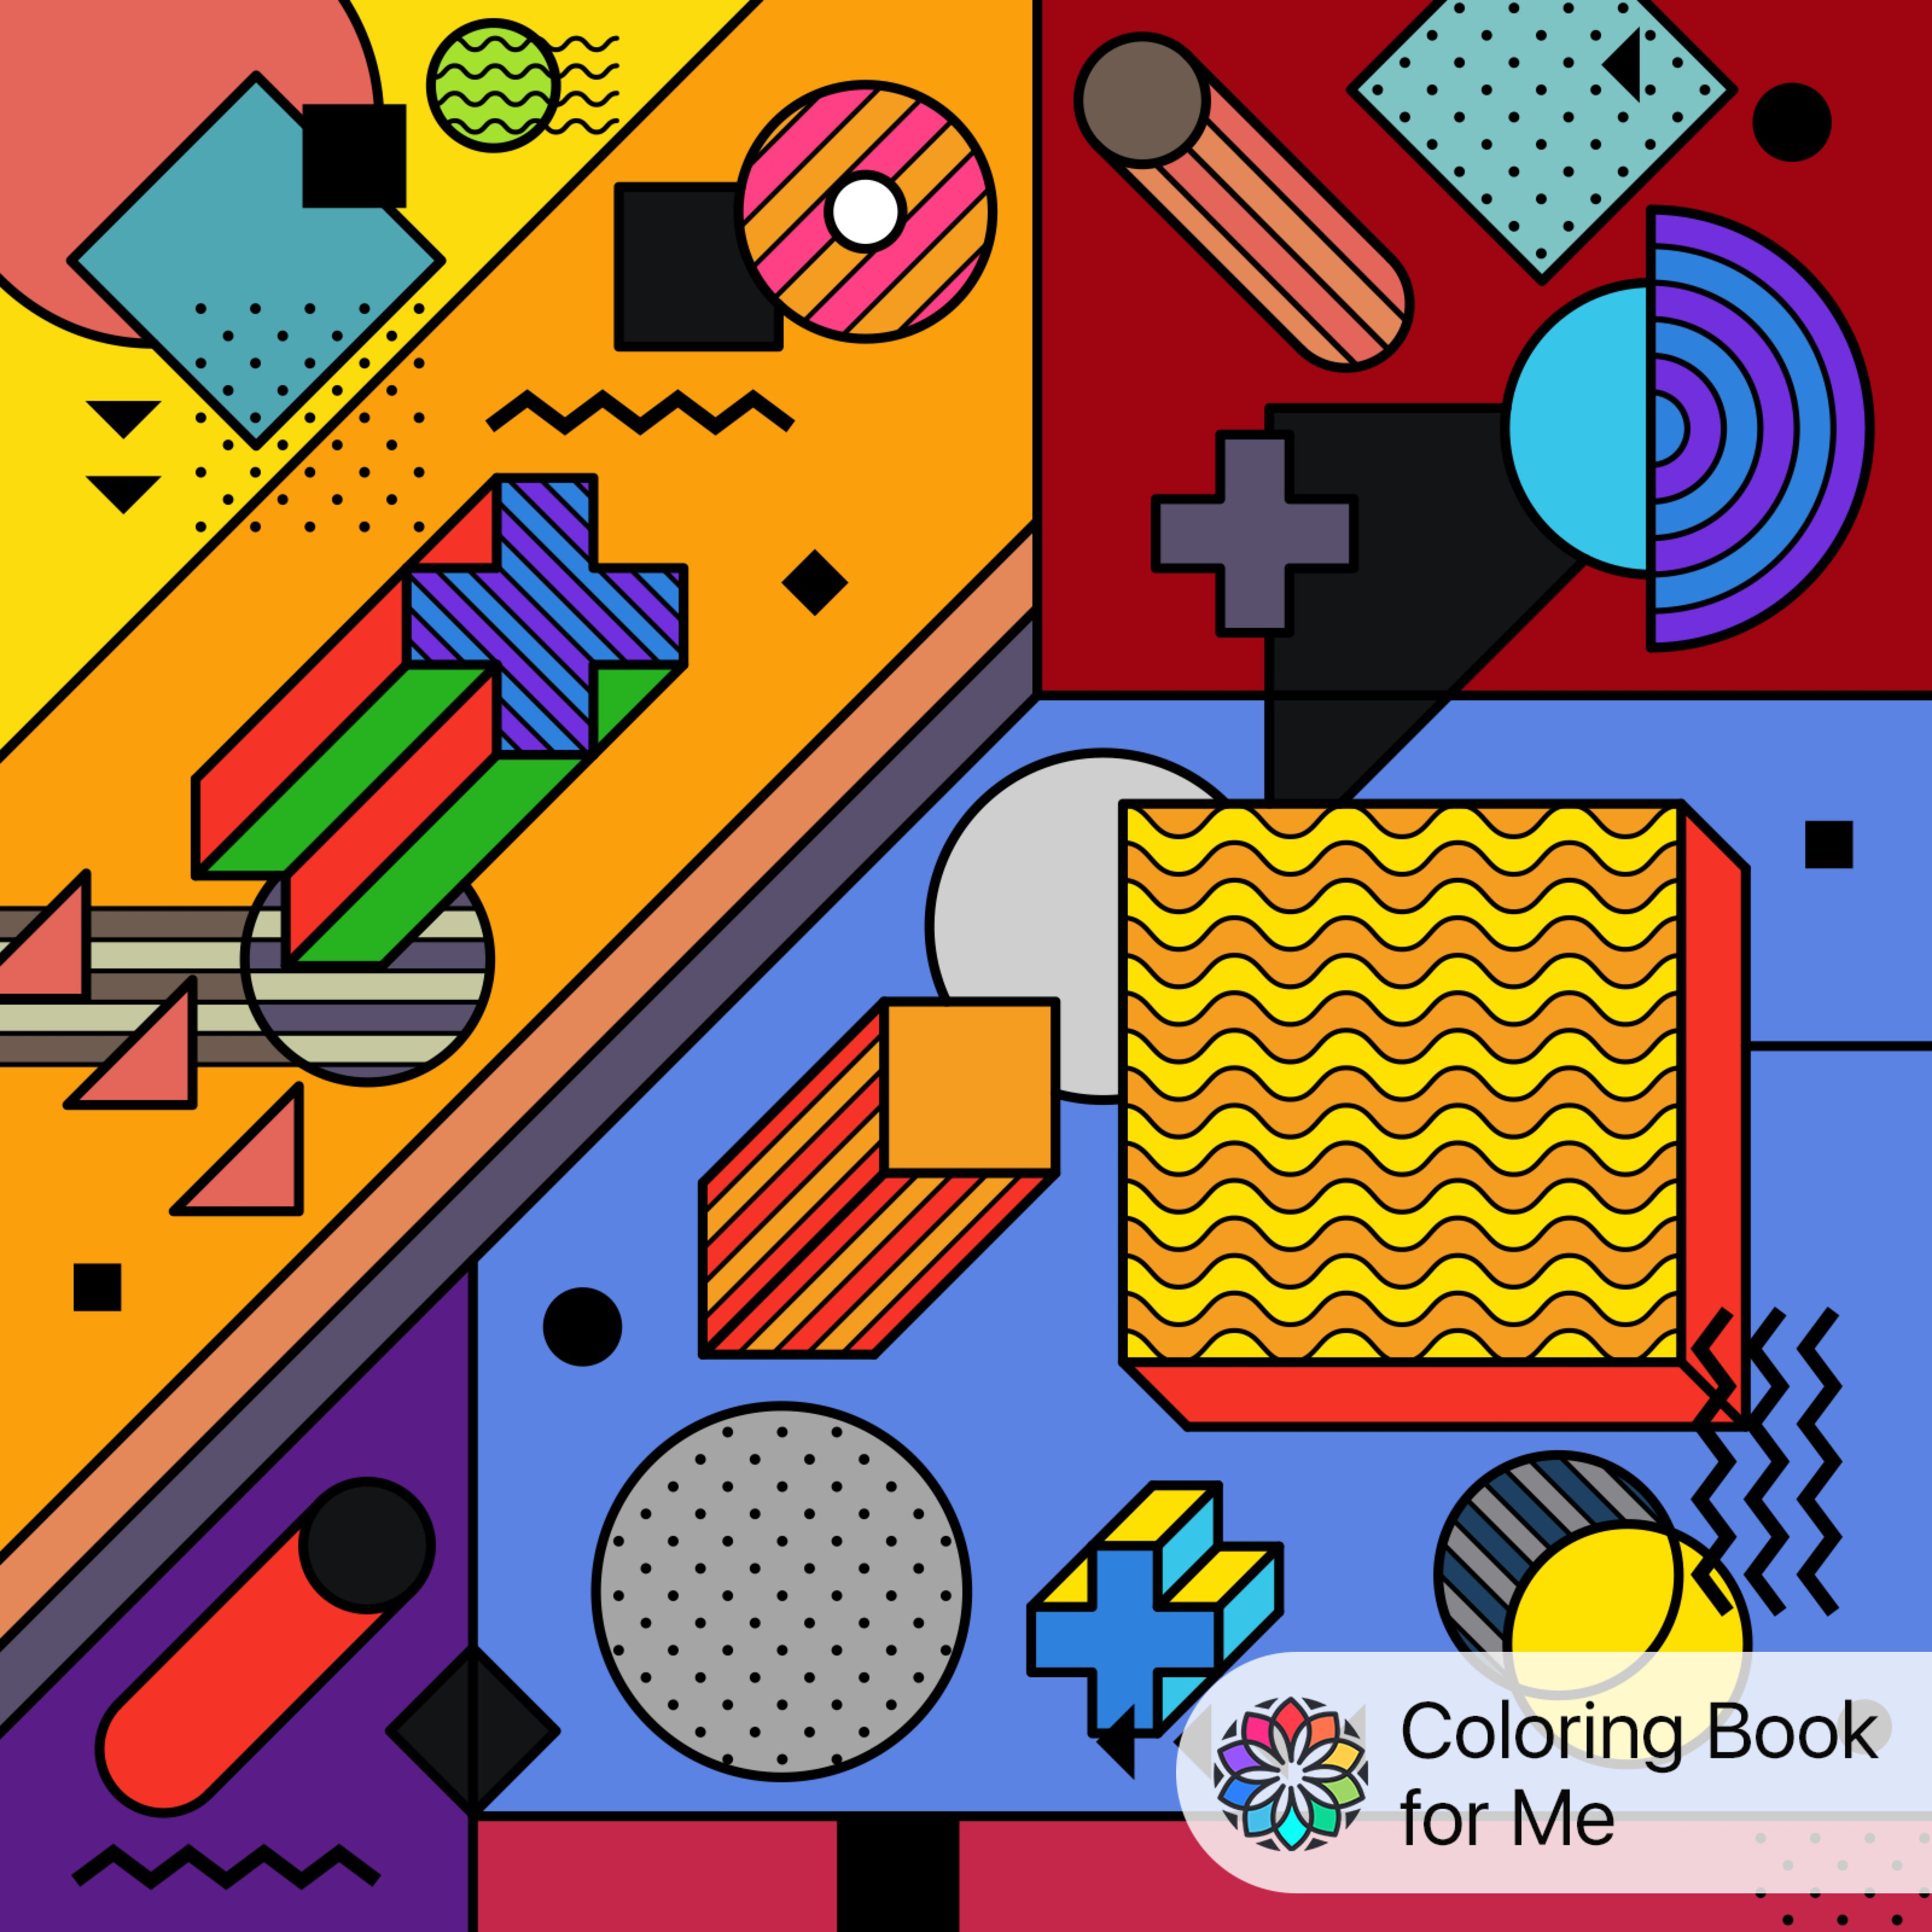 Colored With #Coloringbookforme